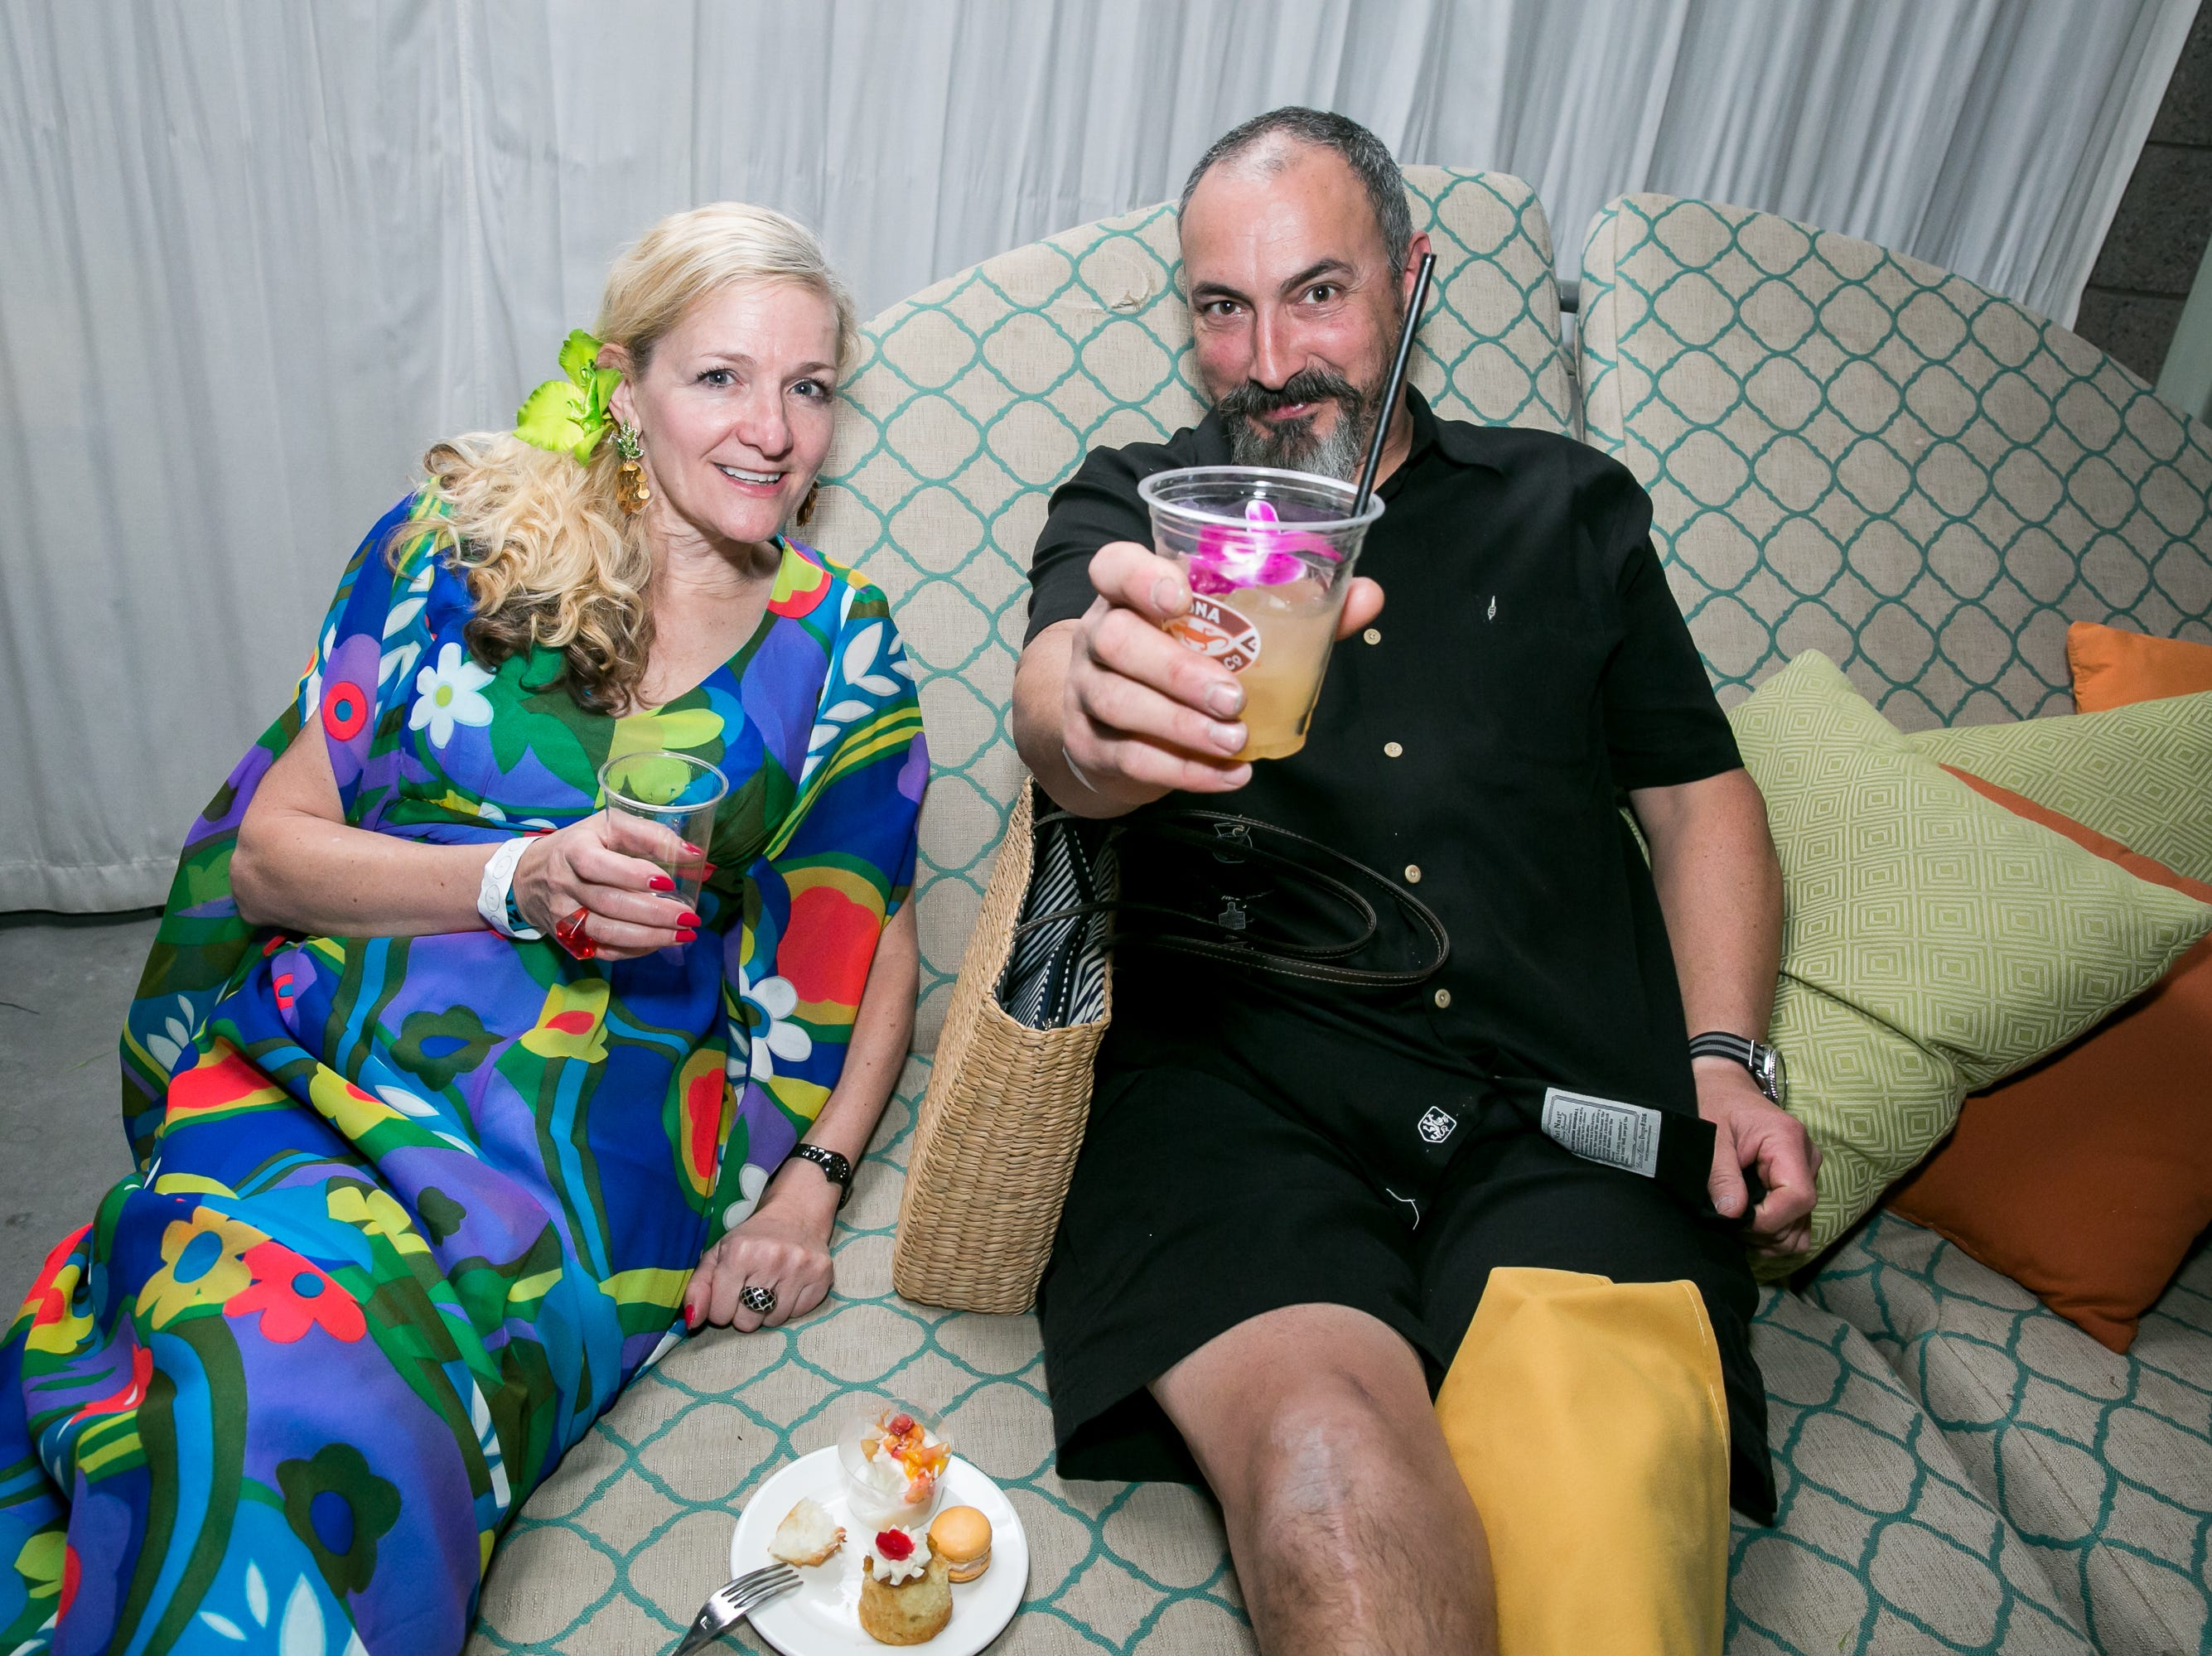 These two had a great night during Arizona Tiki Oasis at Hotel Valley Ho in Scottsdale on April 12, 2019.